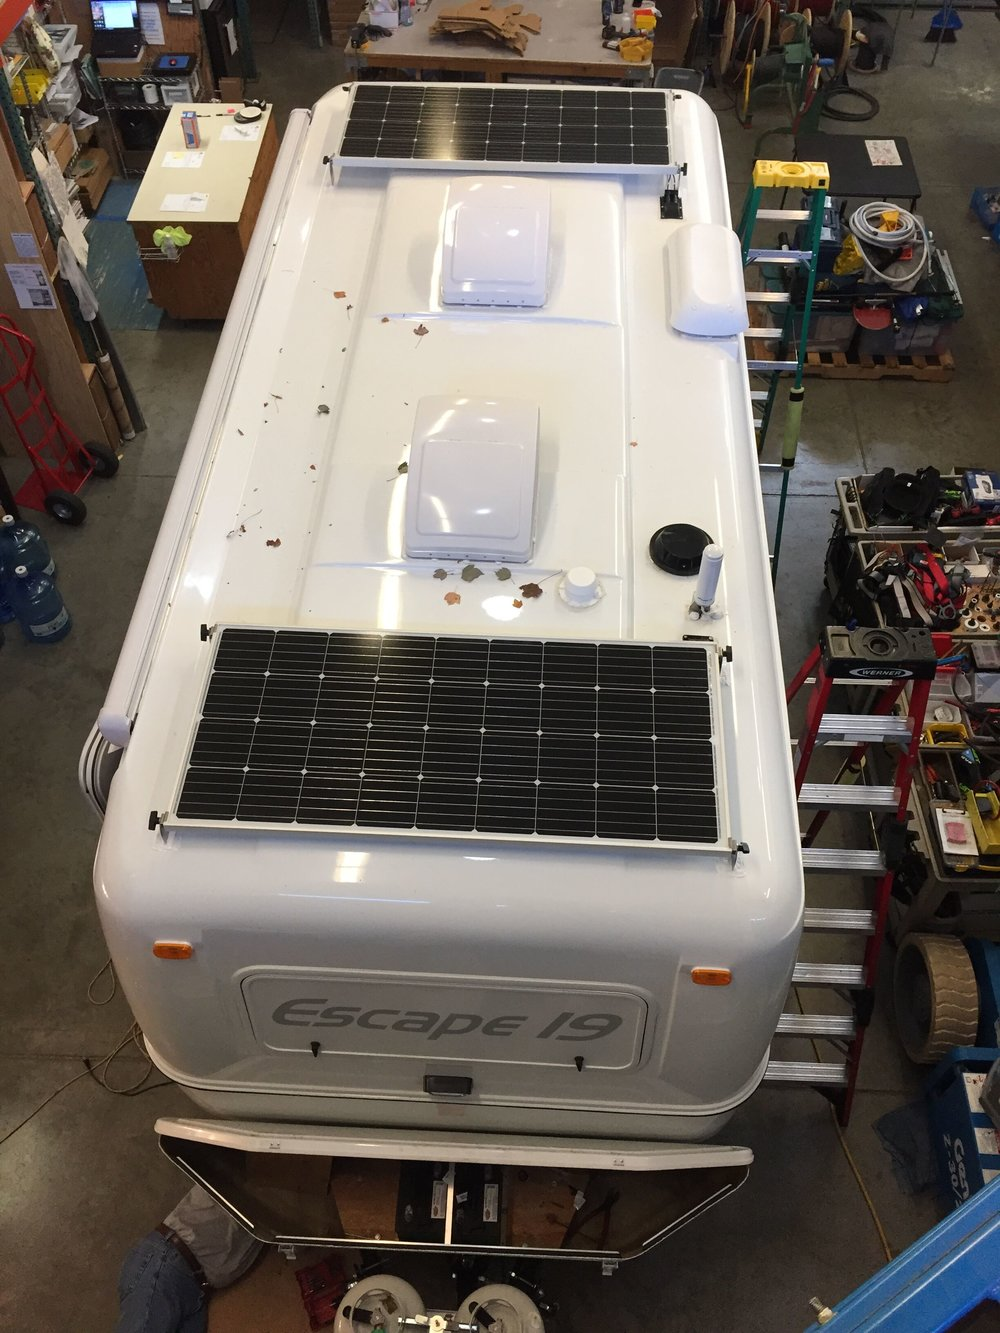 Solar Panel Installation For Rvs Trailers Am 220v Ac Motor Wiring Together With Panels To Batteries Equipment Added 2x Sf180w Kits 1x Sunrunner Victron Mppt 30a Charge Controller Core